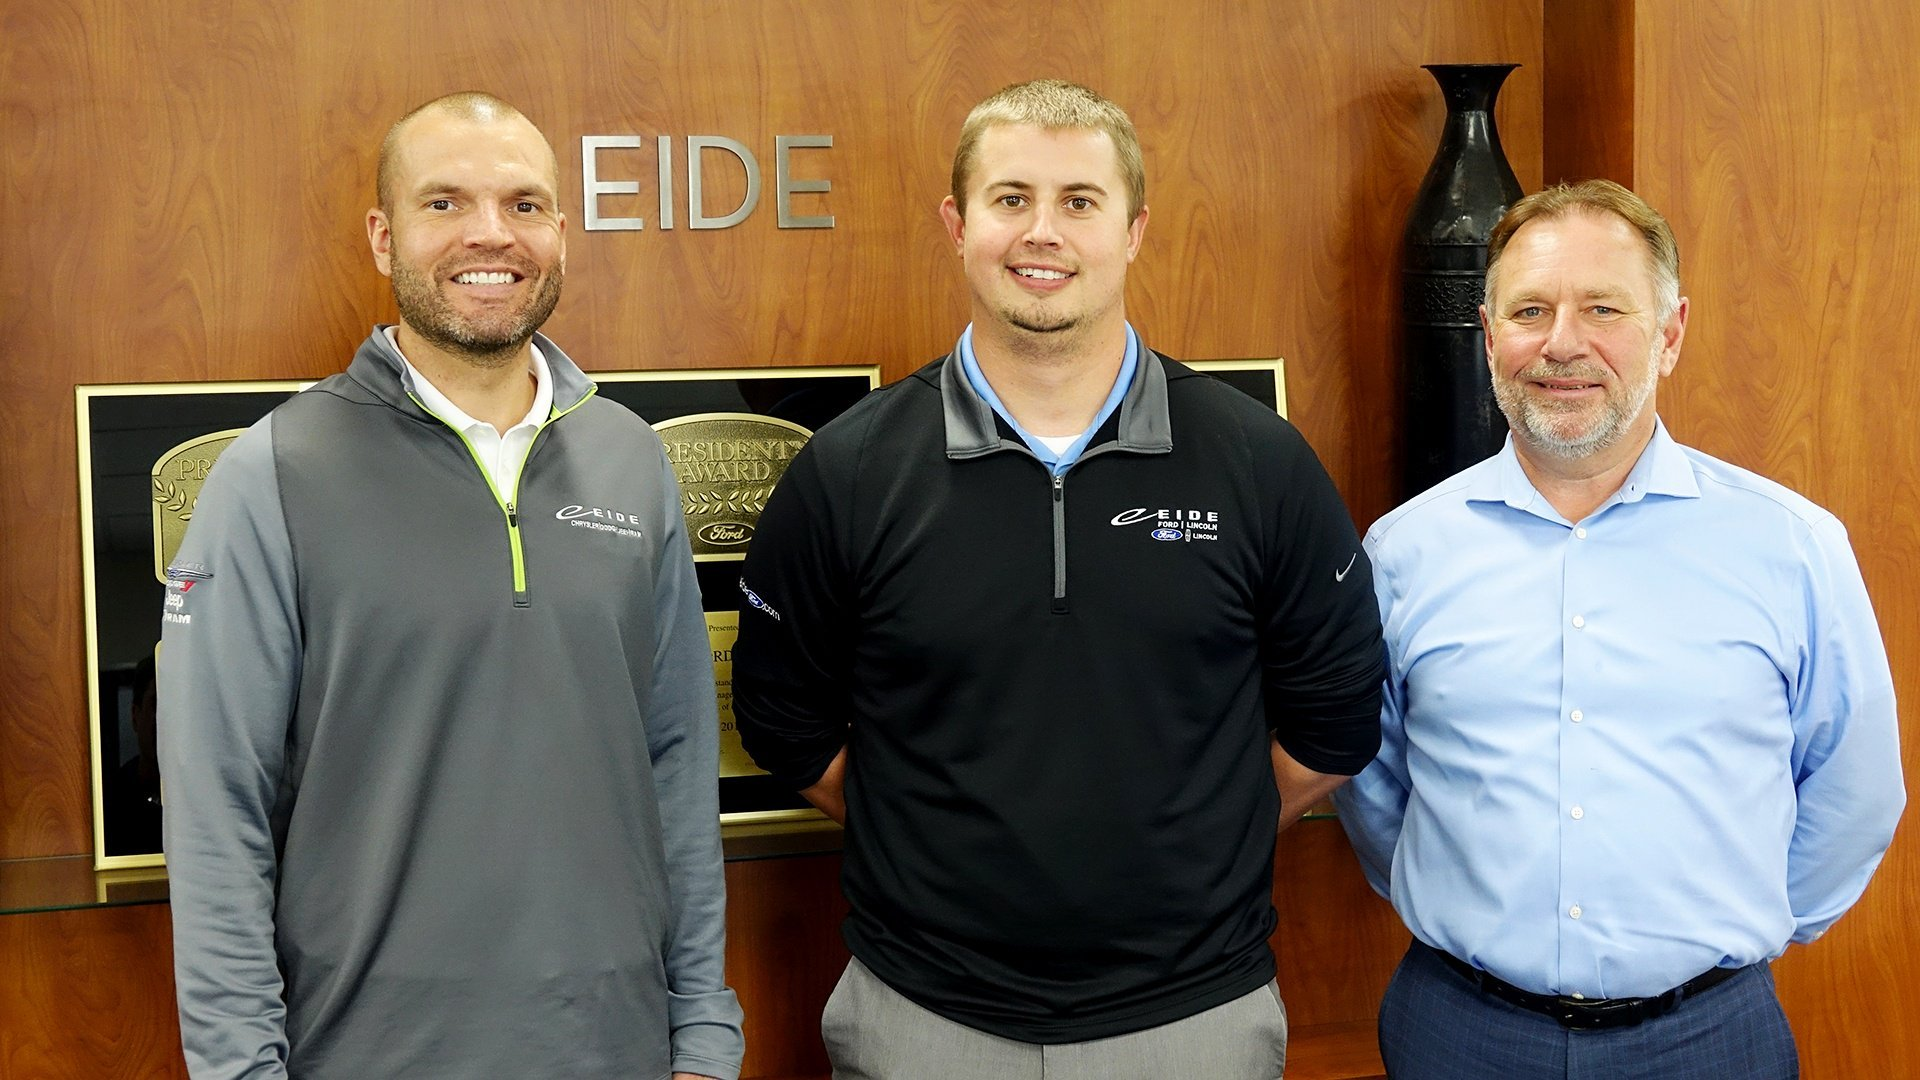 Jesse Schuchard General Sales Manager at Eide Ford